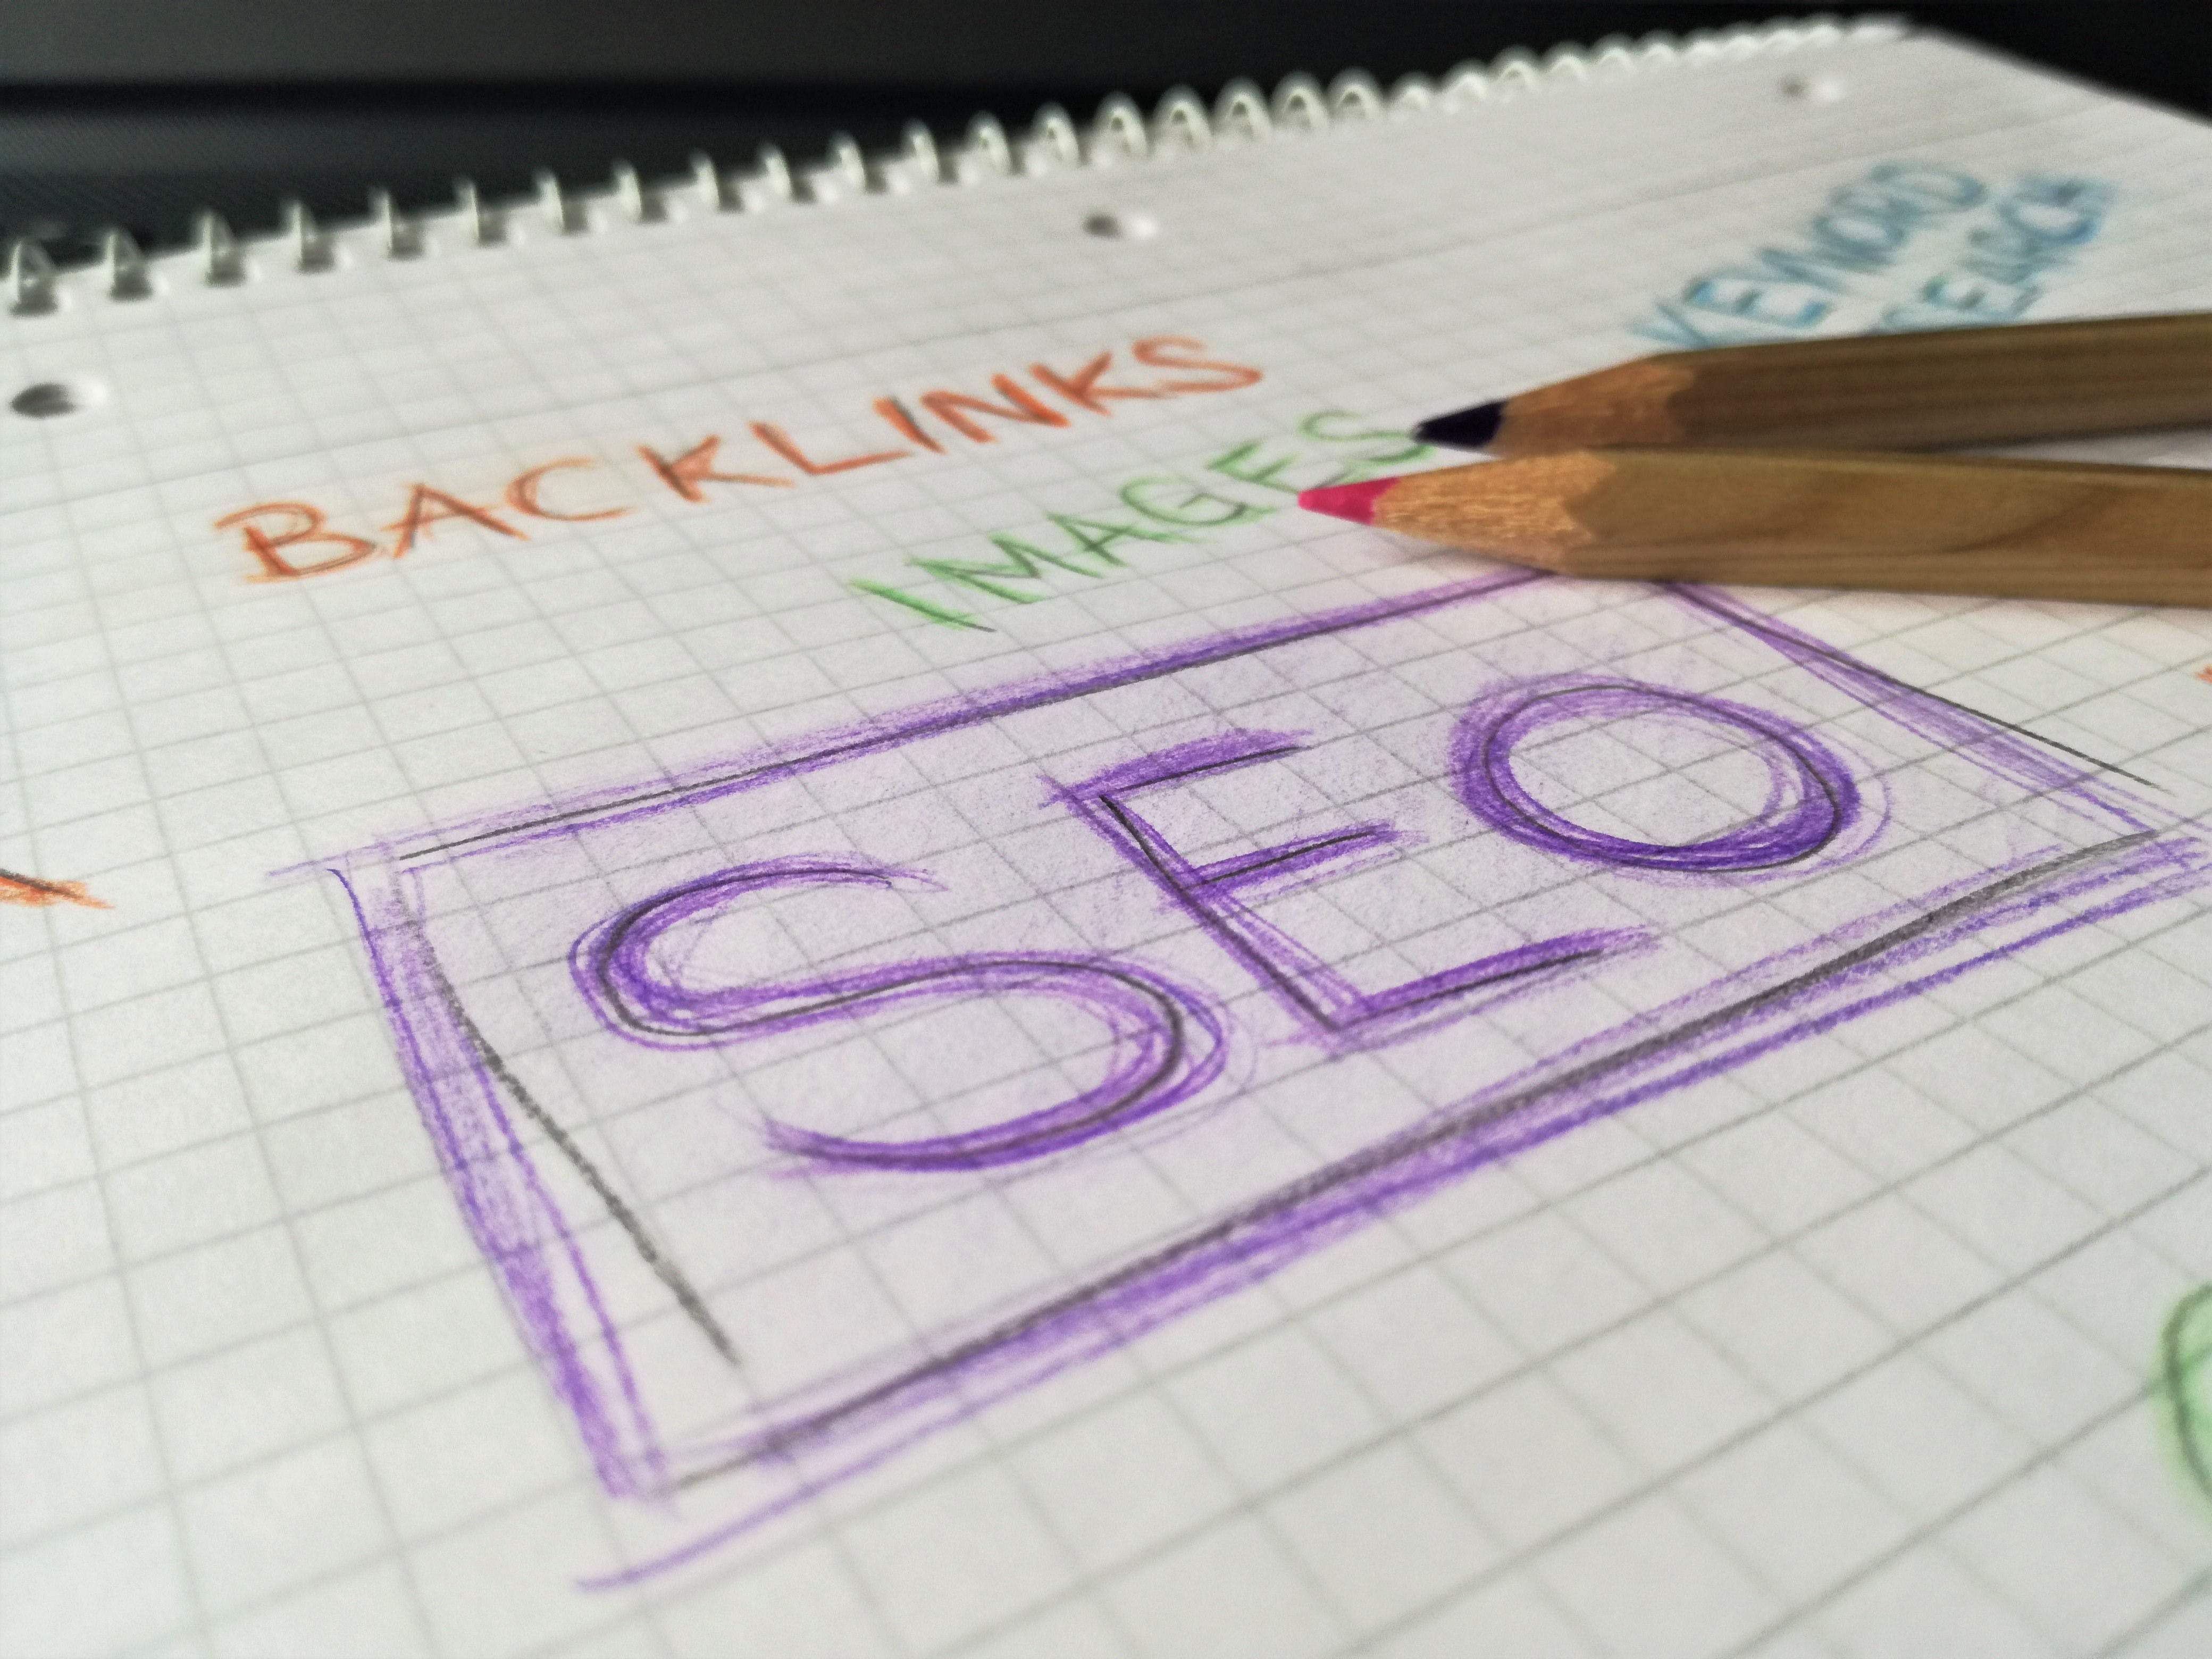 Free stock photo of backlinks, digital marketing, handwriting, handwritten